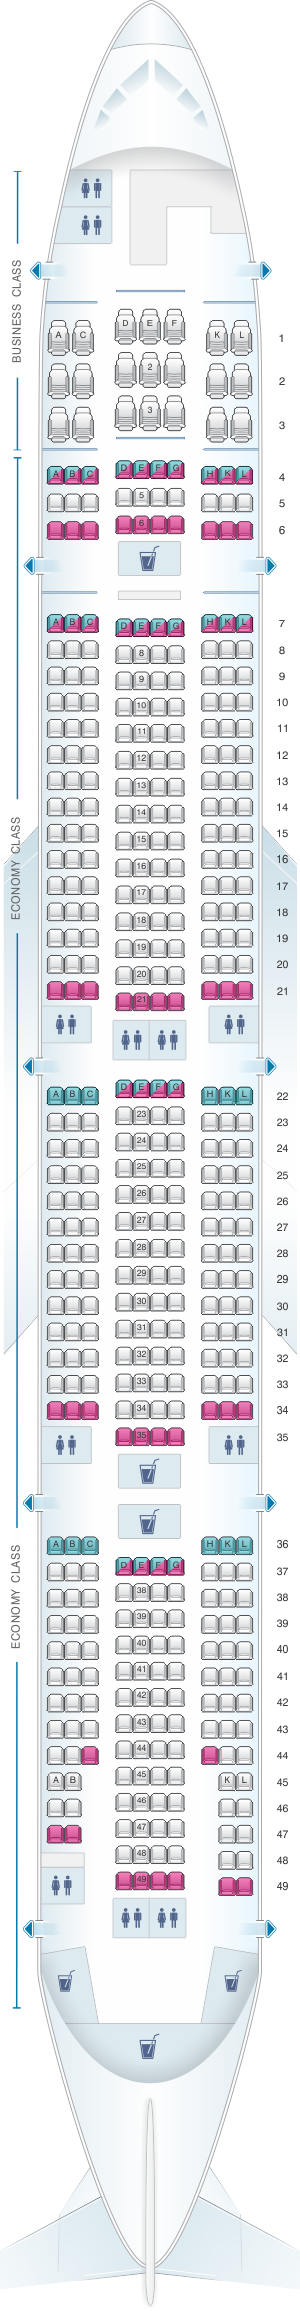 Seat map for Rossiya Airlines Boeing B777 300ER